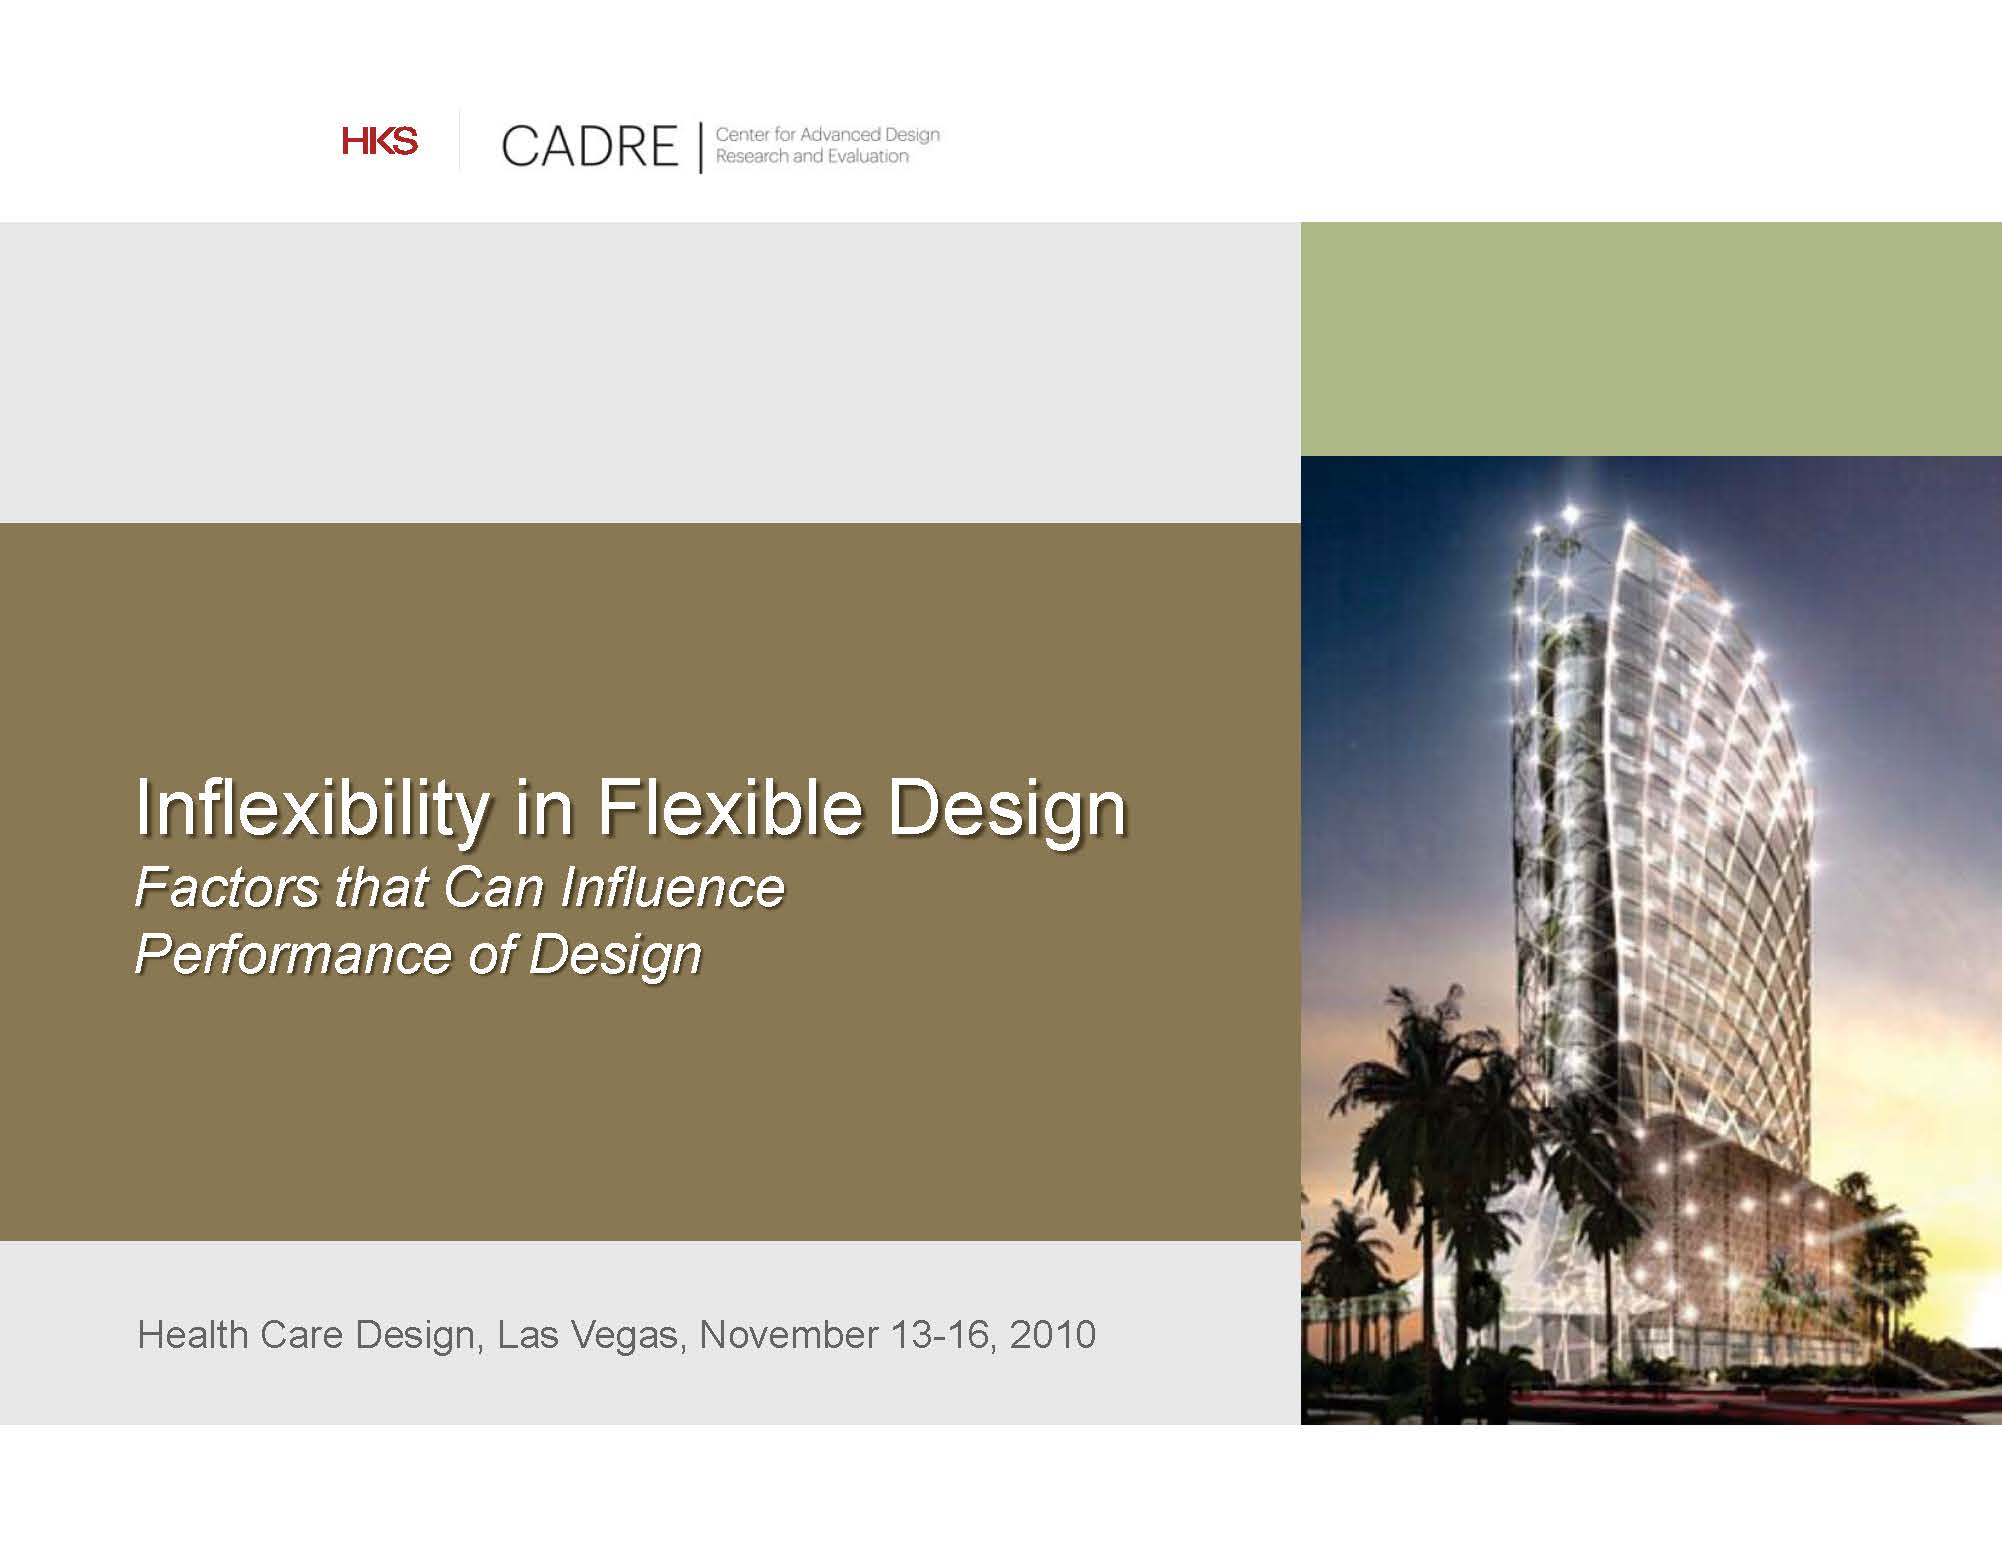 Inflexibility in Flexible Design Factors that Can Influence Performance of Design     Debajyoti Pati, Thomas E. Harvey, Jennie Evans, and Doug Bazuin   Healthcare Design Conference